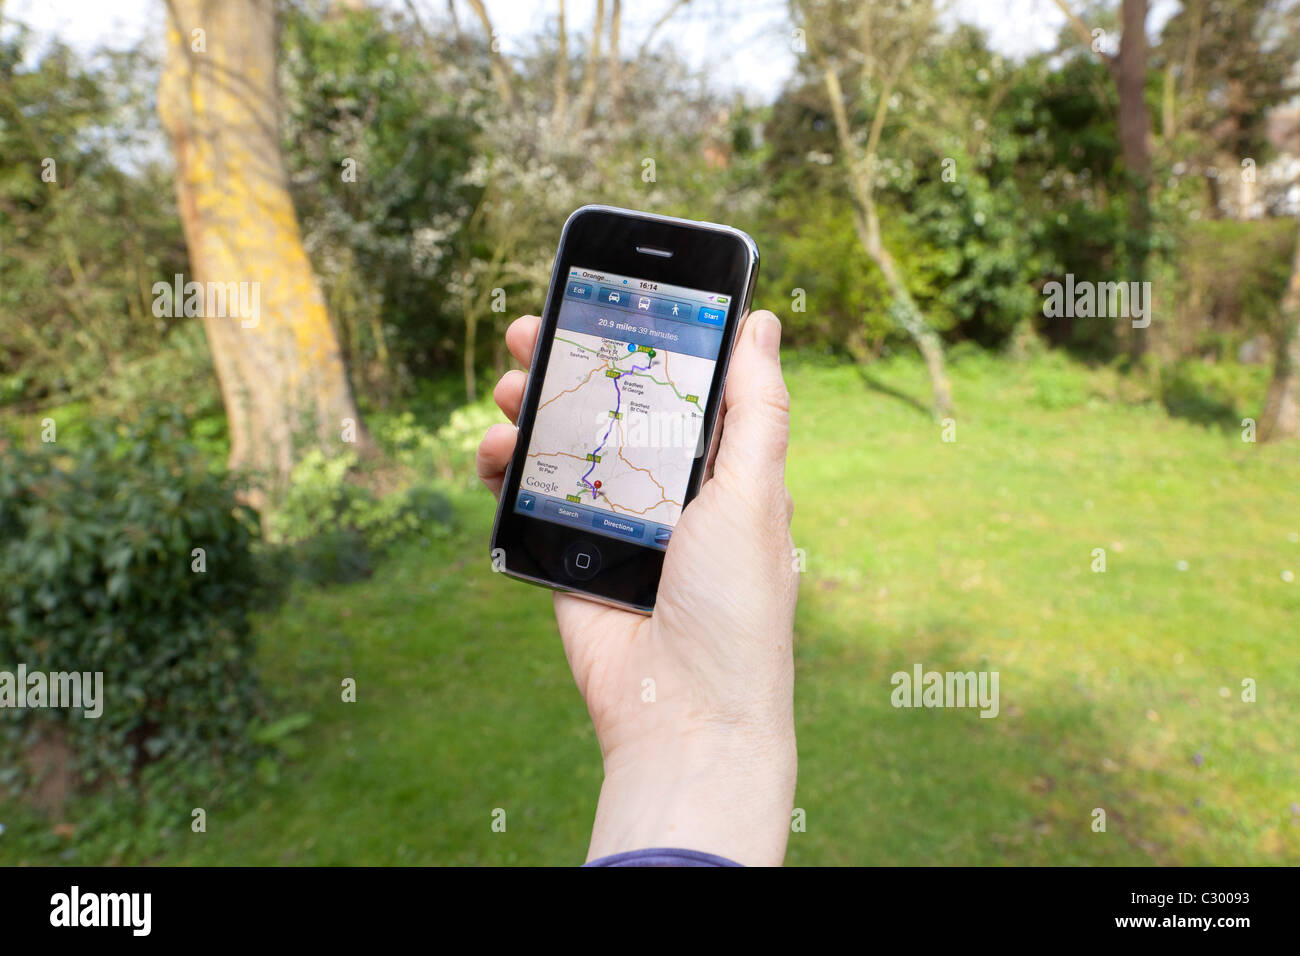 person using iPhone for GPS / Satnav map on screen - Stock Image